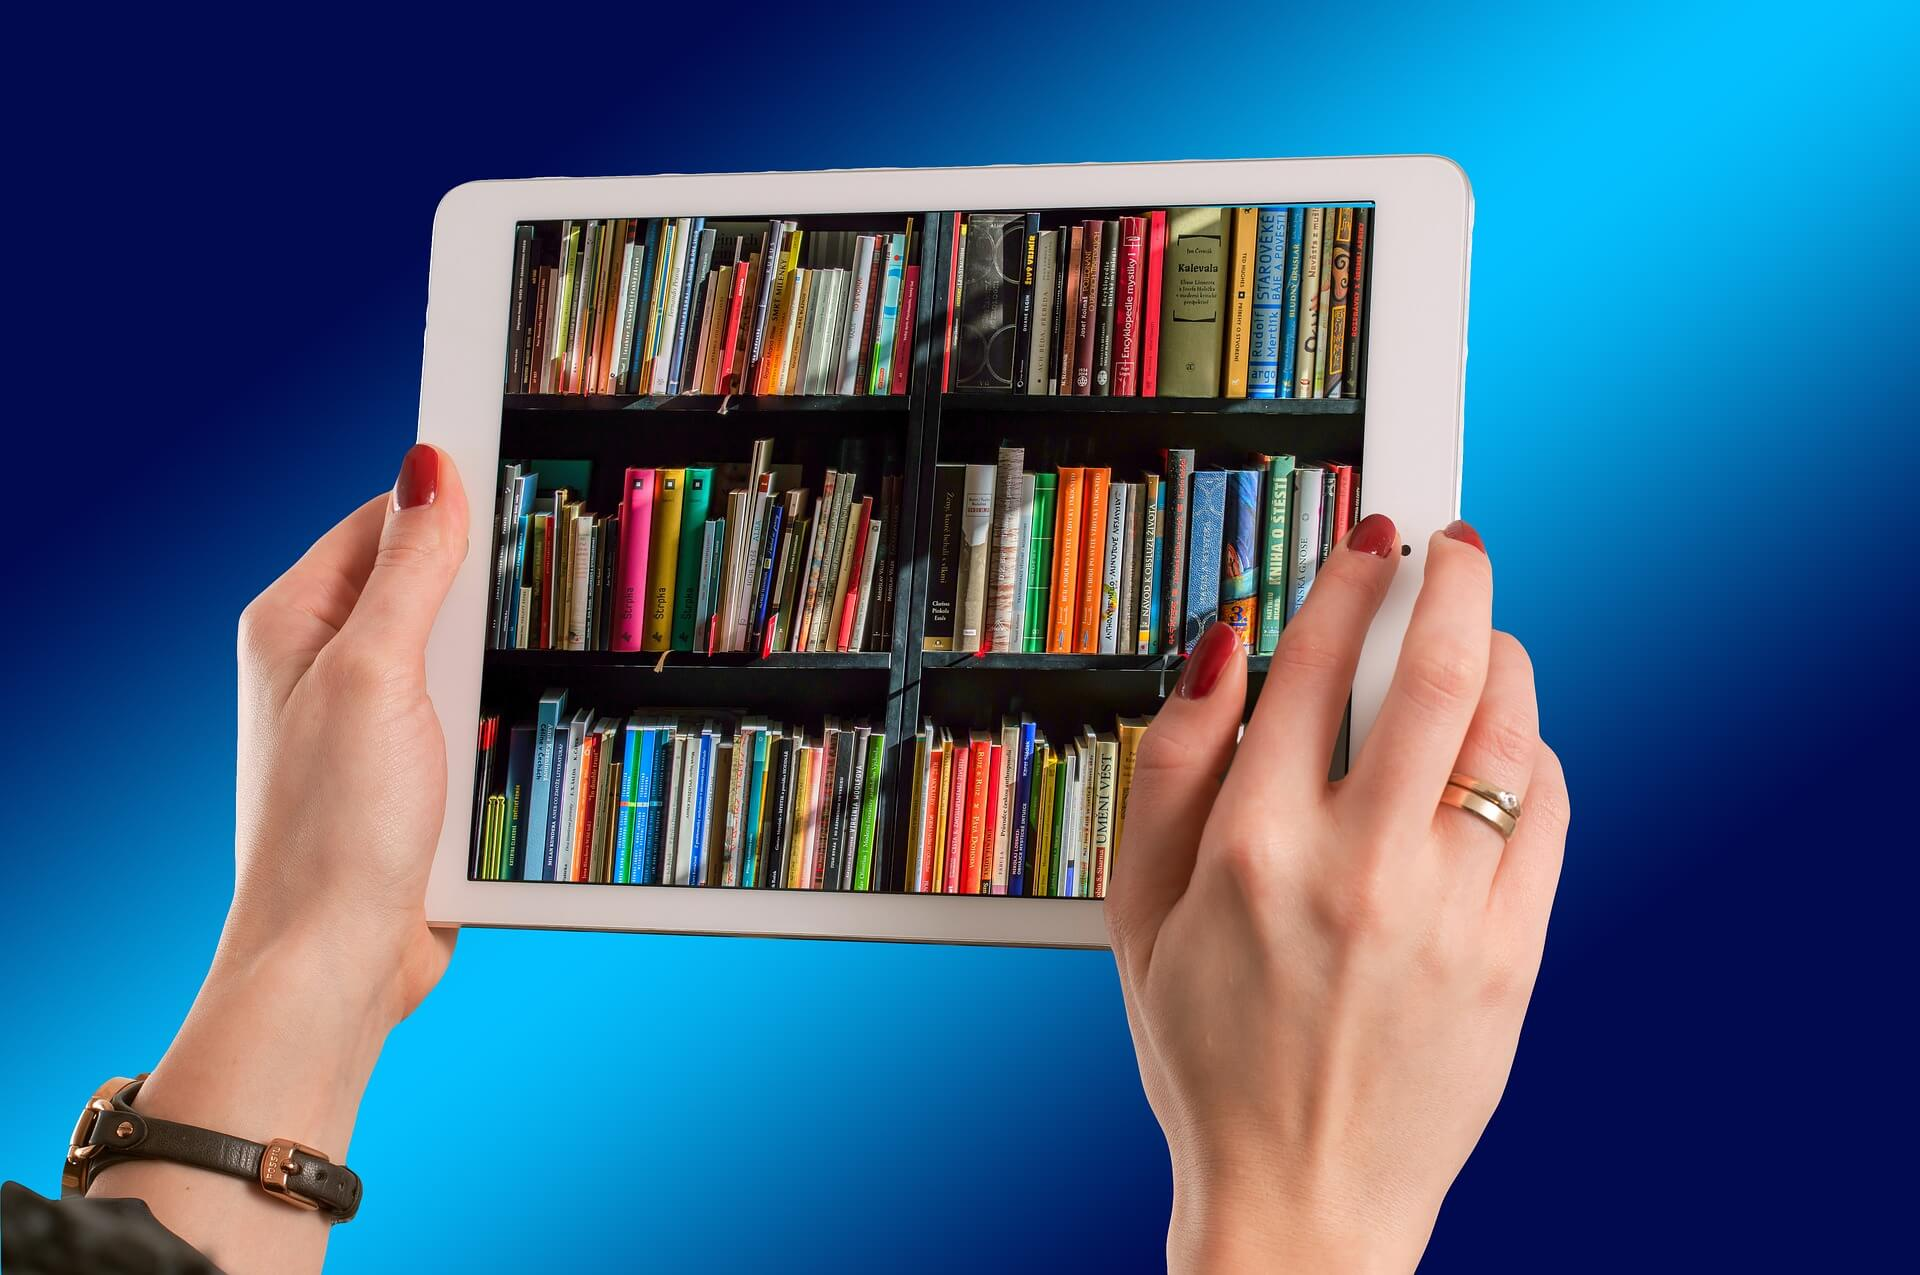 Female hands hold a tablet displaying a photo of library shelves filled with books.